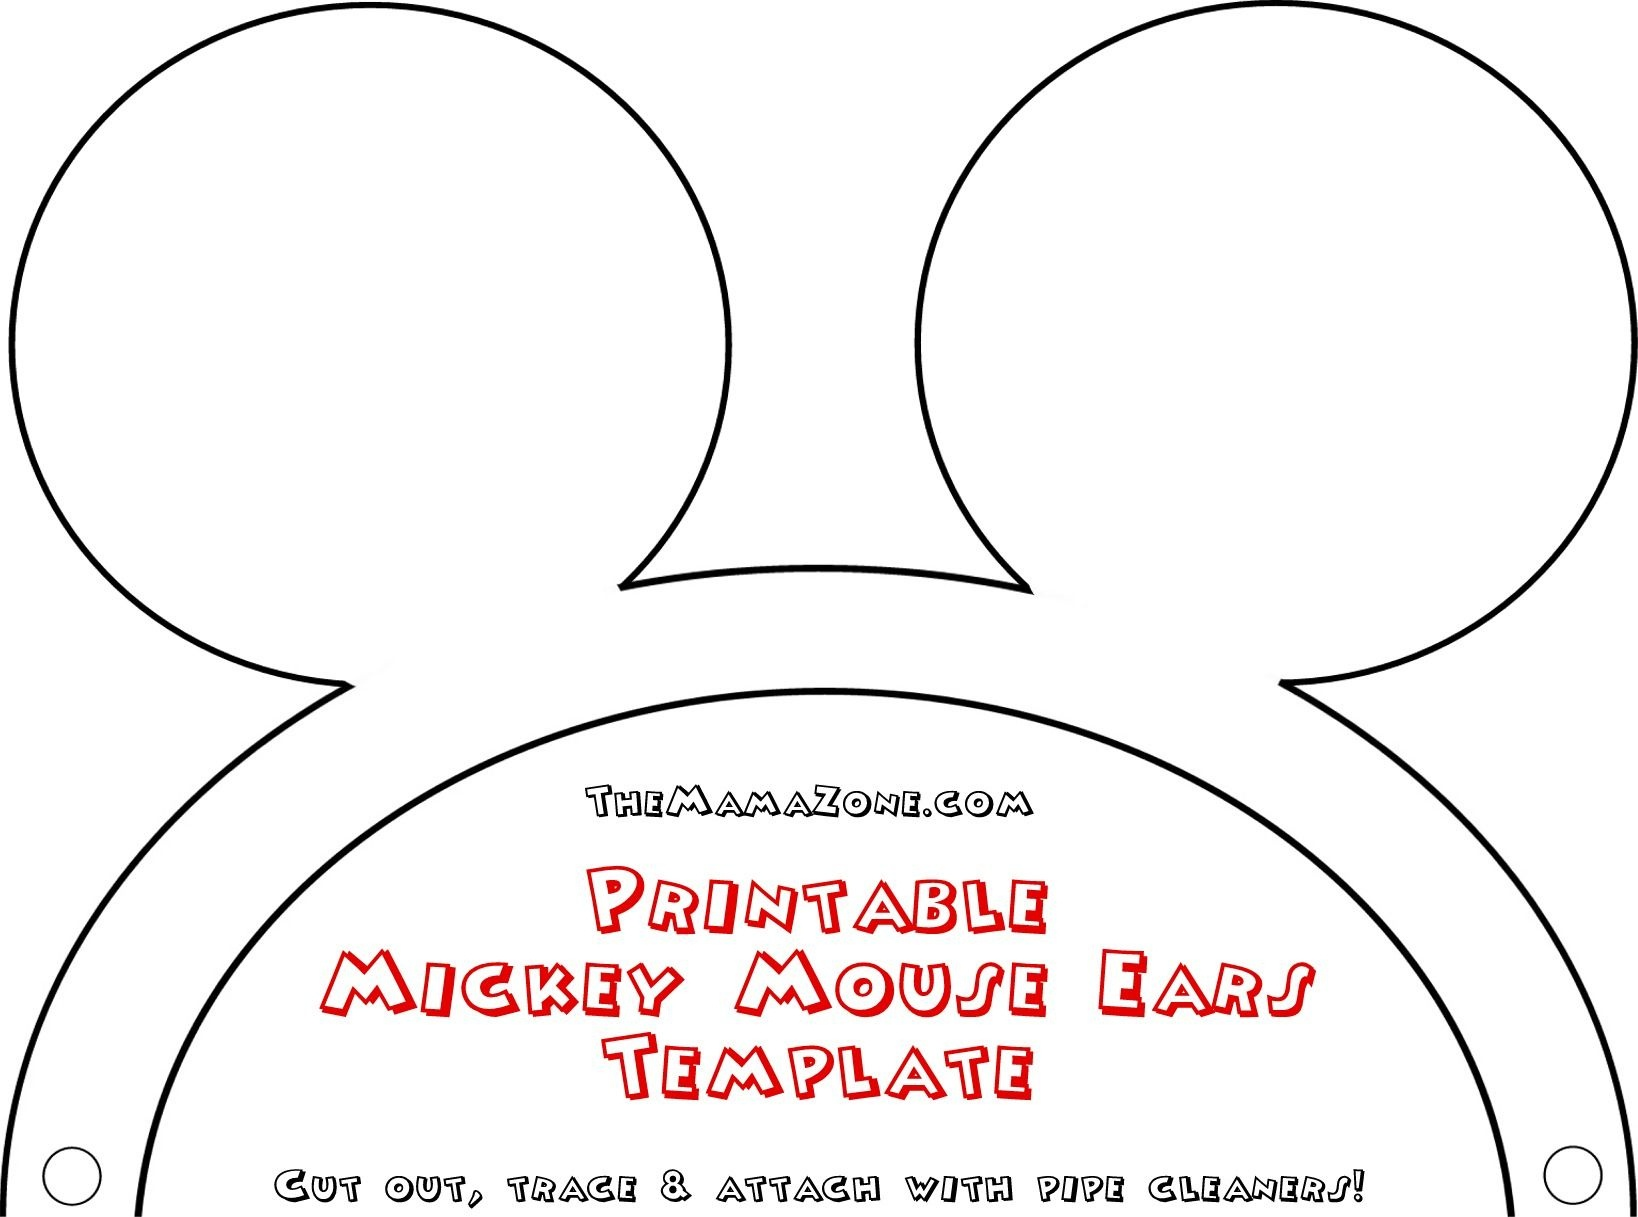 Free Mickey Mouse Ears Template | Misc | Mickey Mouse Ears, Mouse - Free Printable Minnie Mouse Ears Template